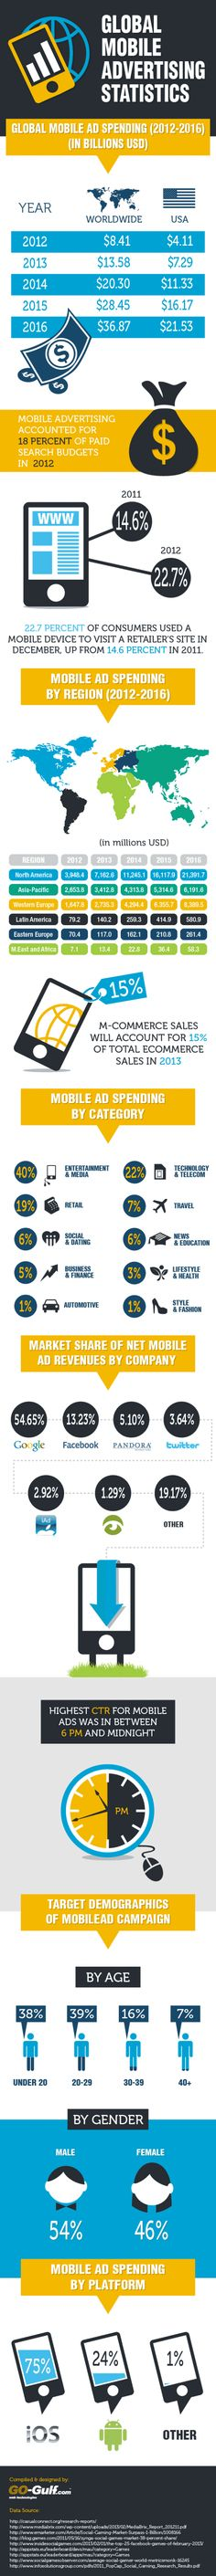 #mobile | Global Mobile Advertising - Statistics and Trends